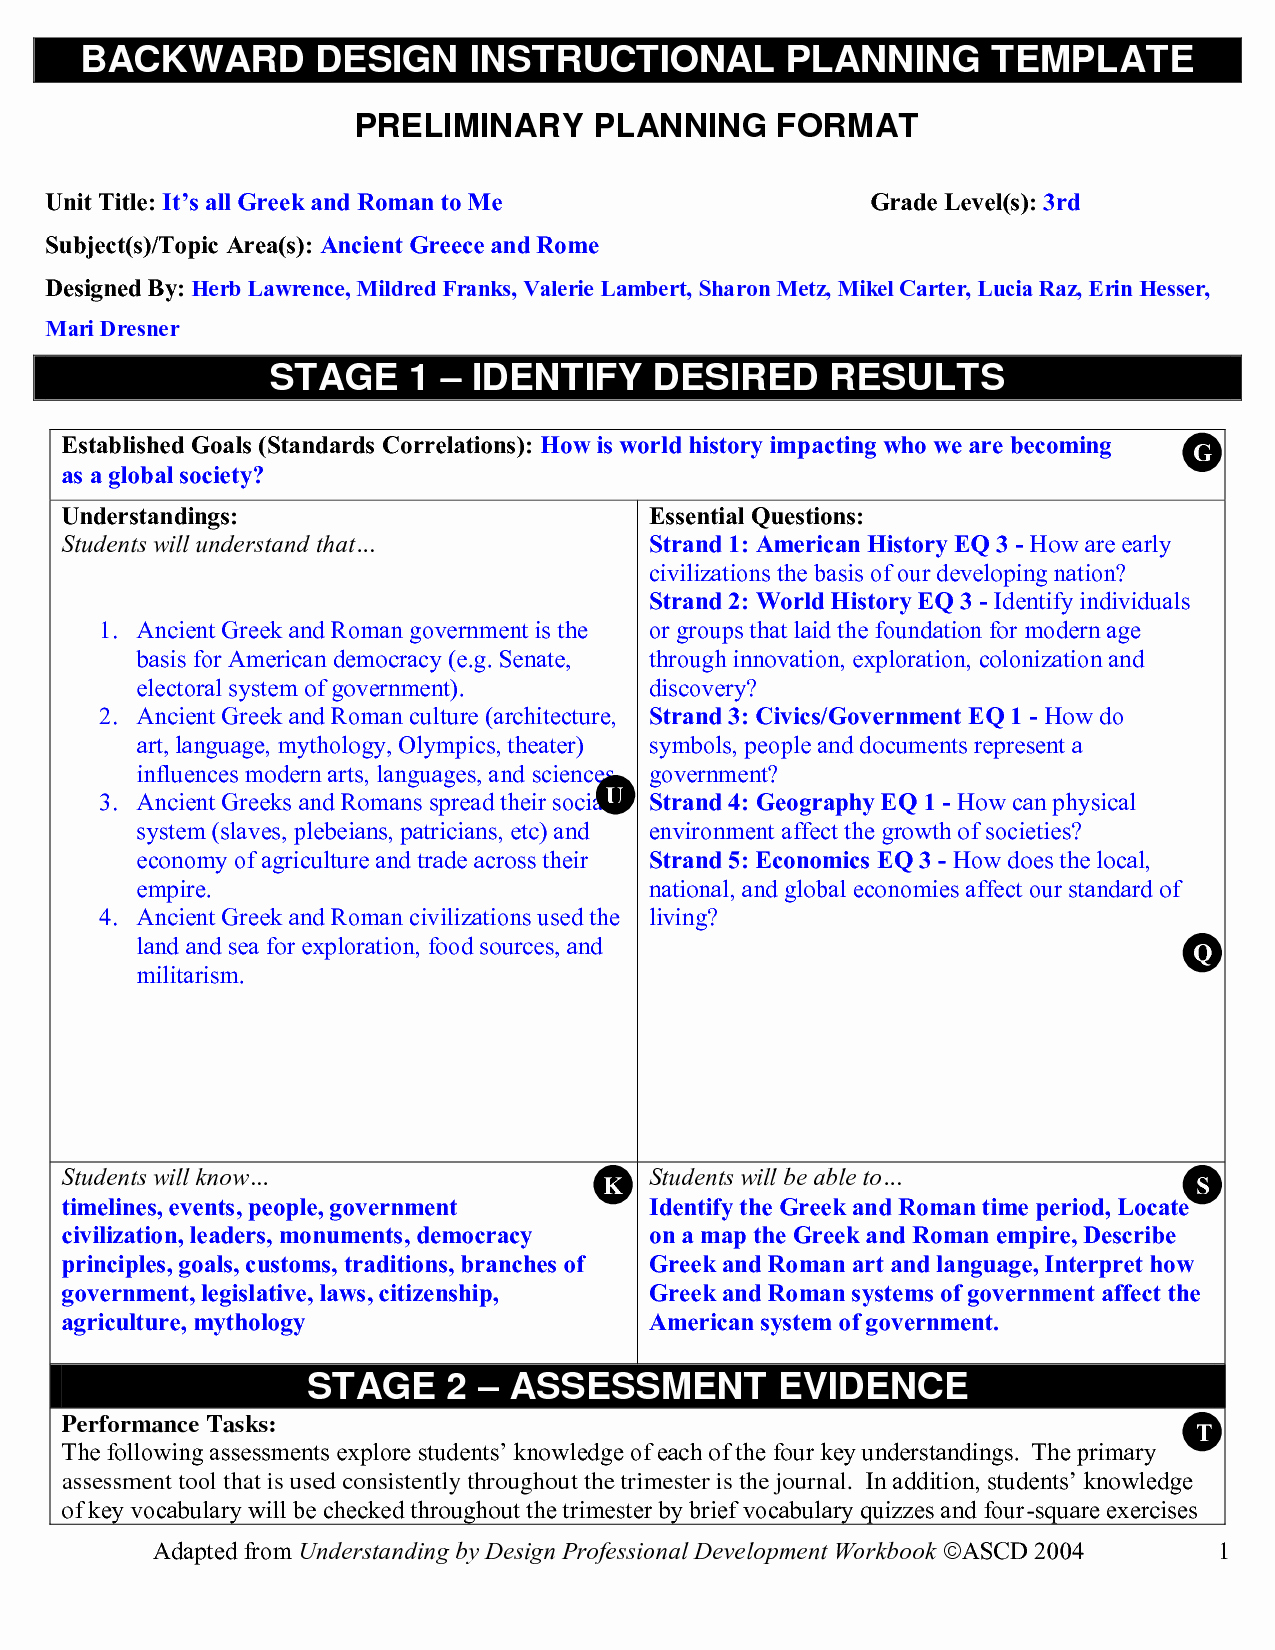 Backwards Design Lesson Plan Template Luxury Backward Planning Template